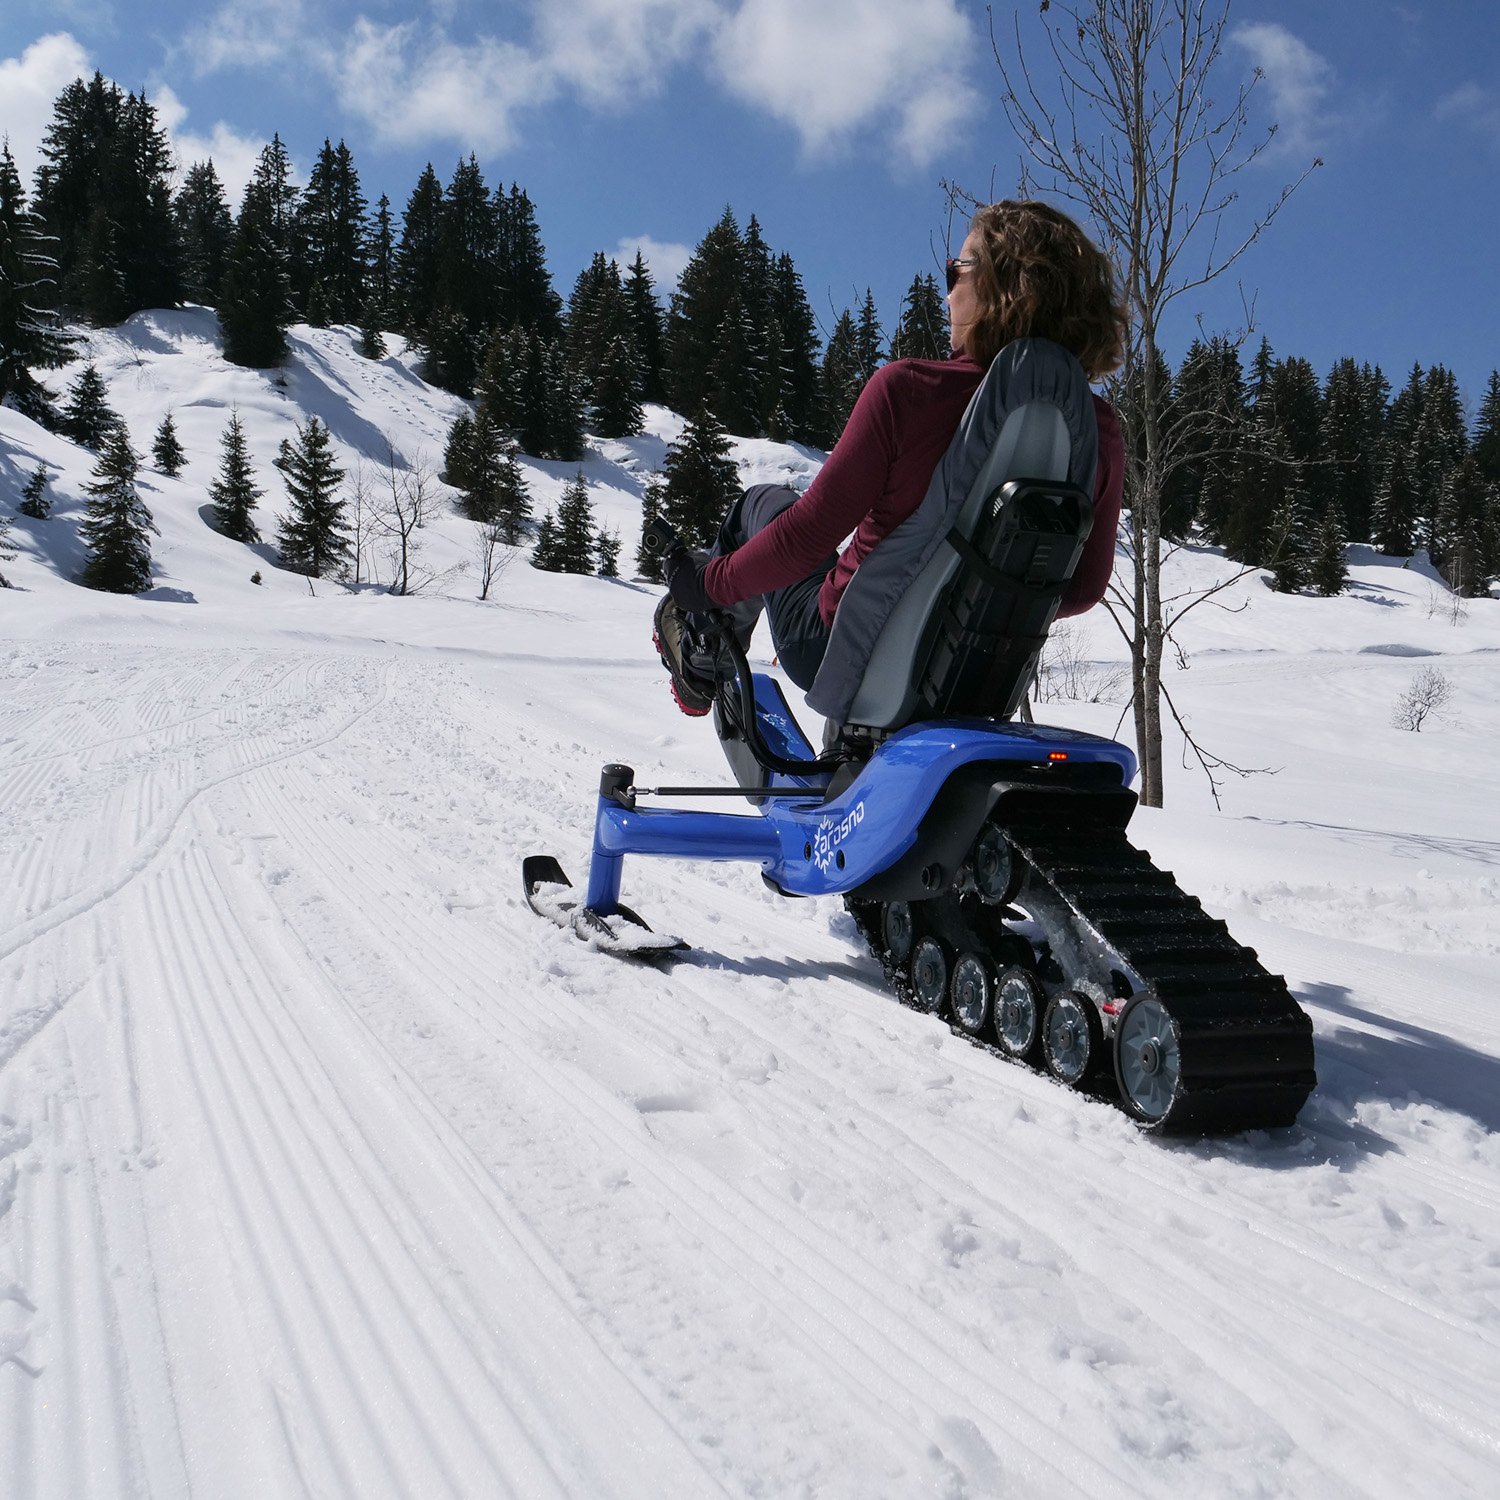 E-trace, the first electric snow bike